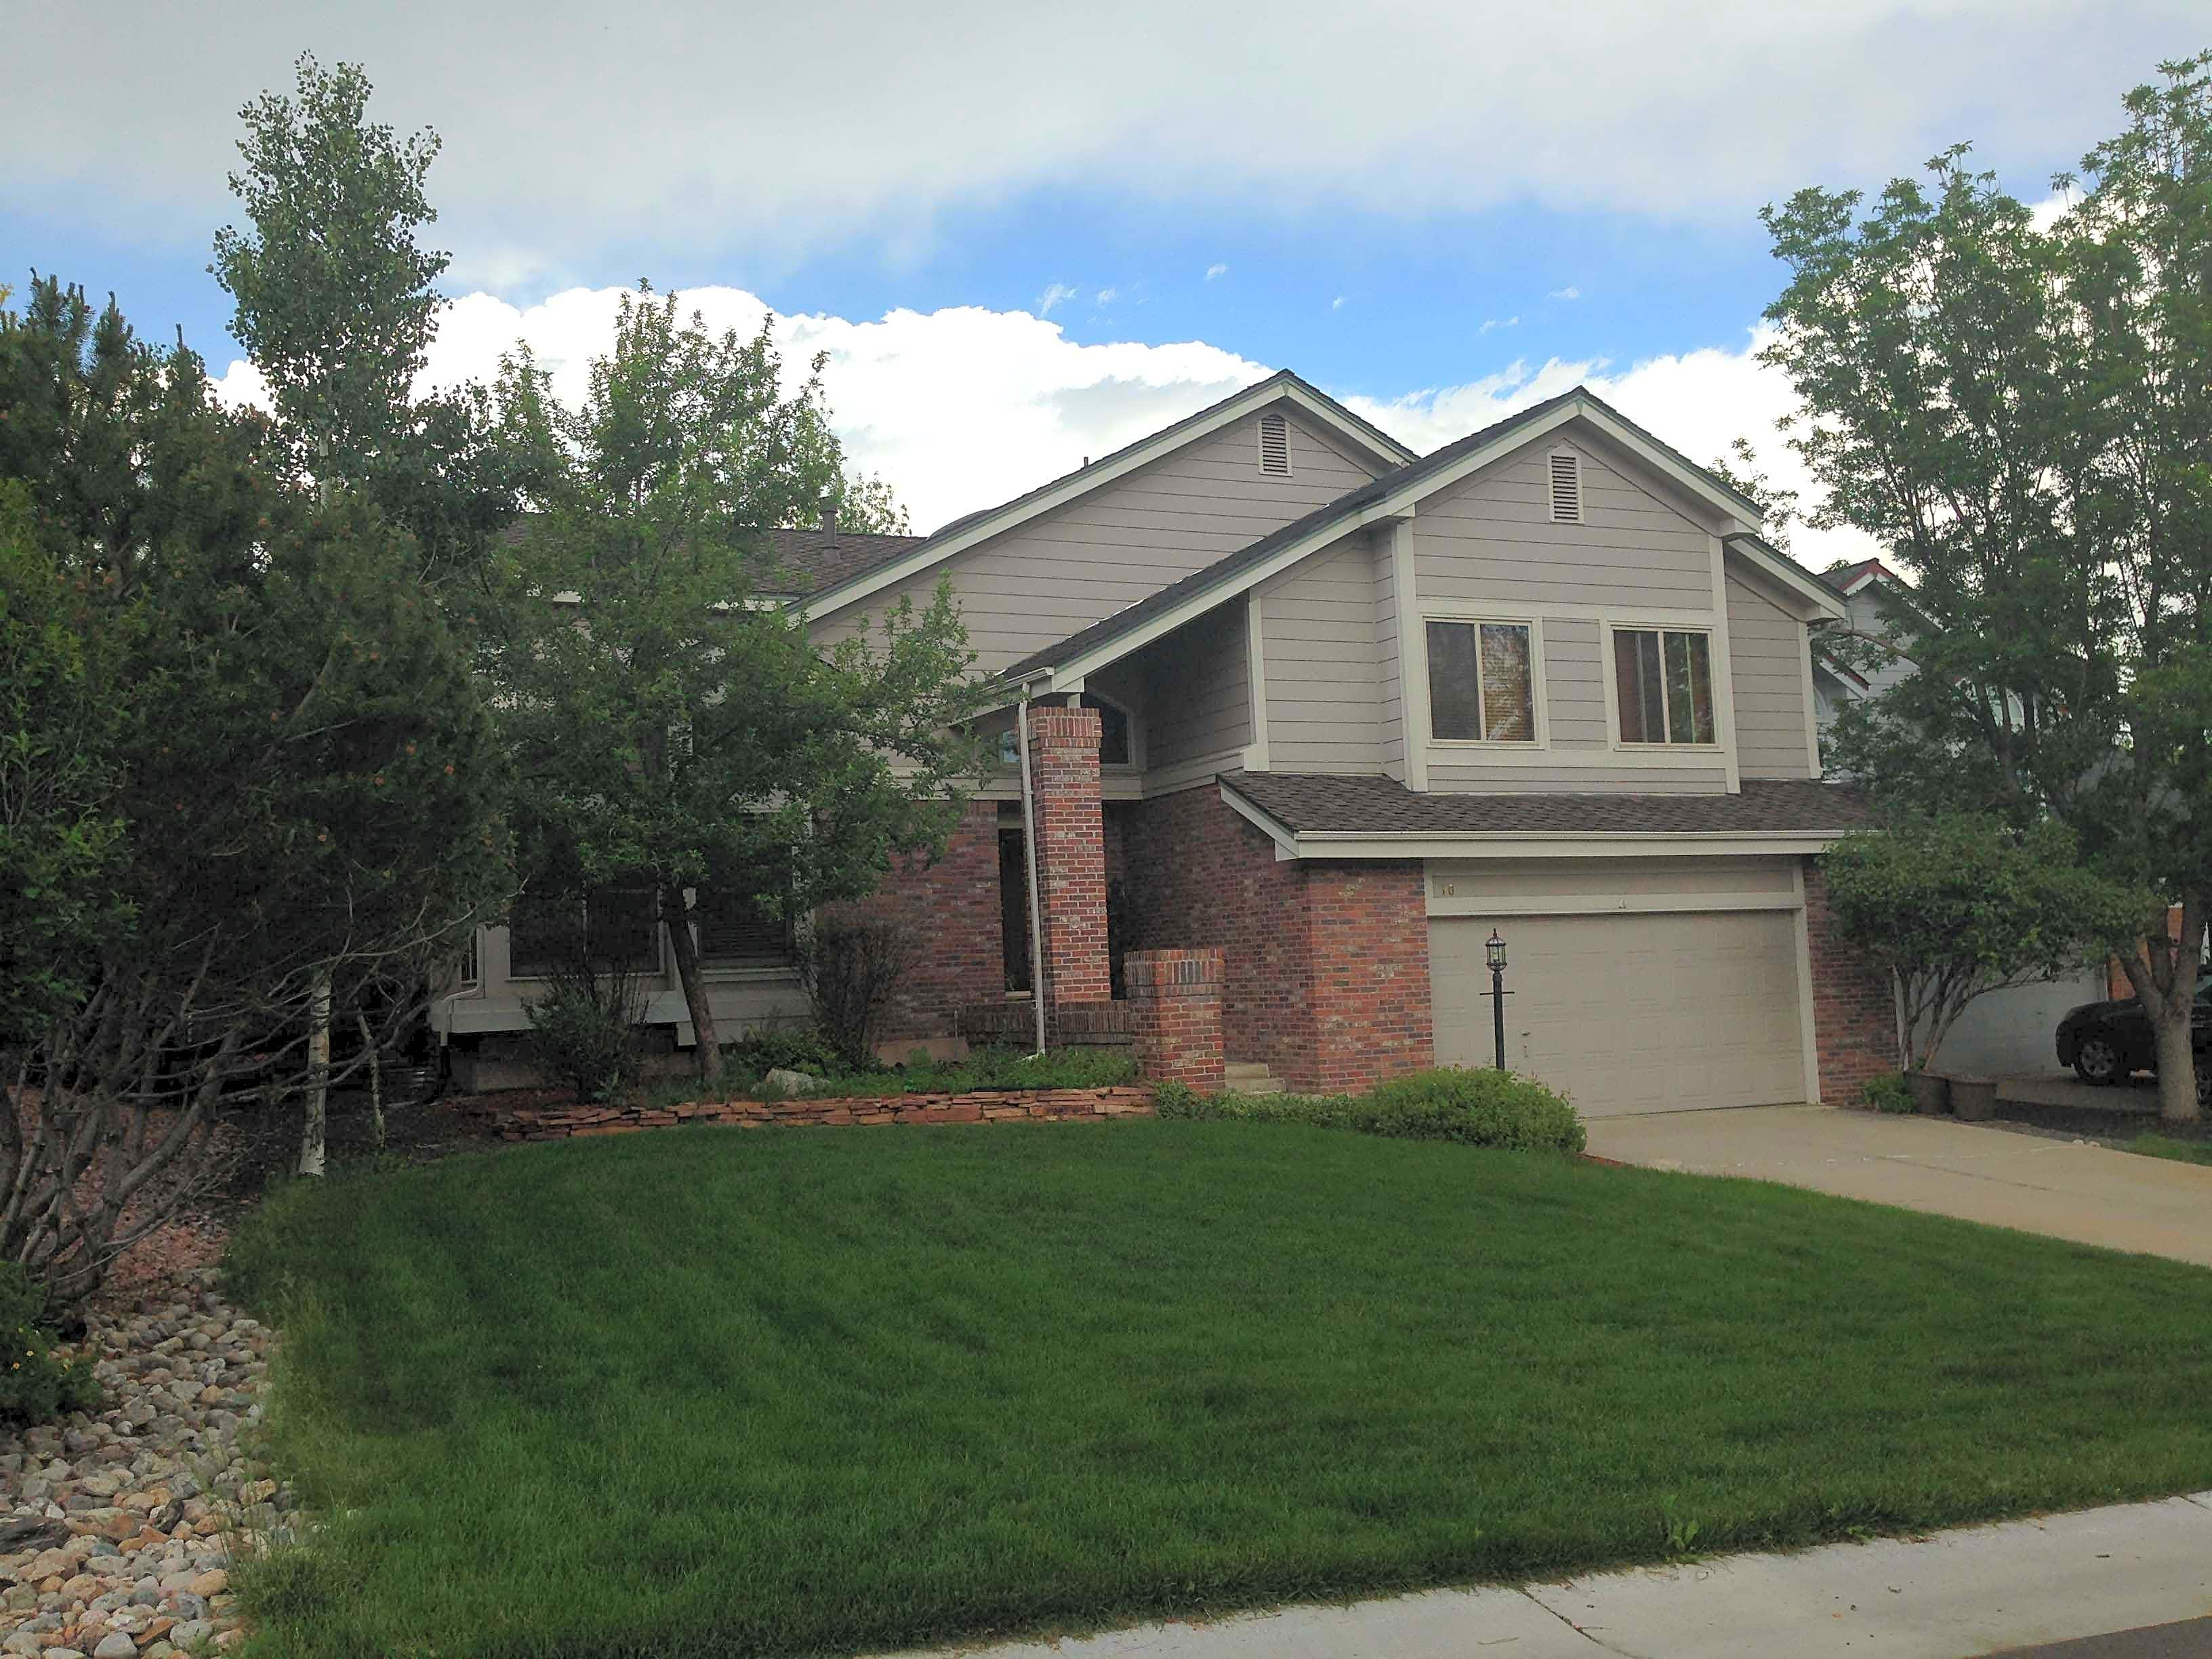 Home for rent 6626 chantilly pl colorado springs co 80922 contoh gambar rumah One bedroom house for rent denver